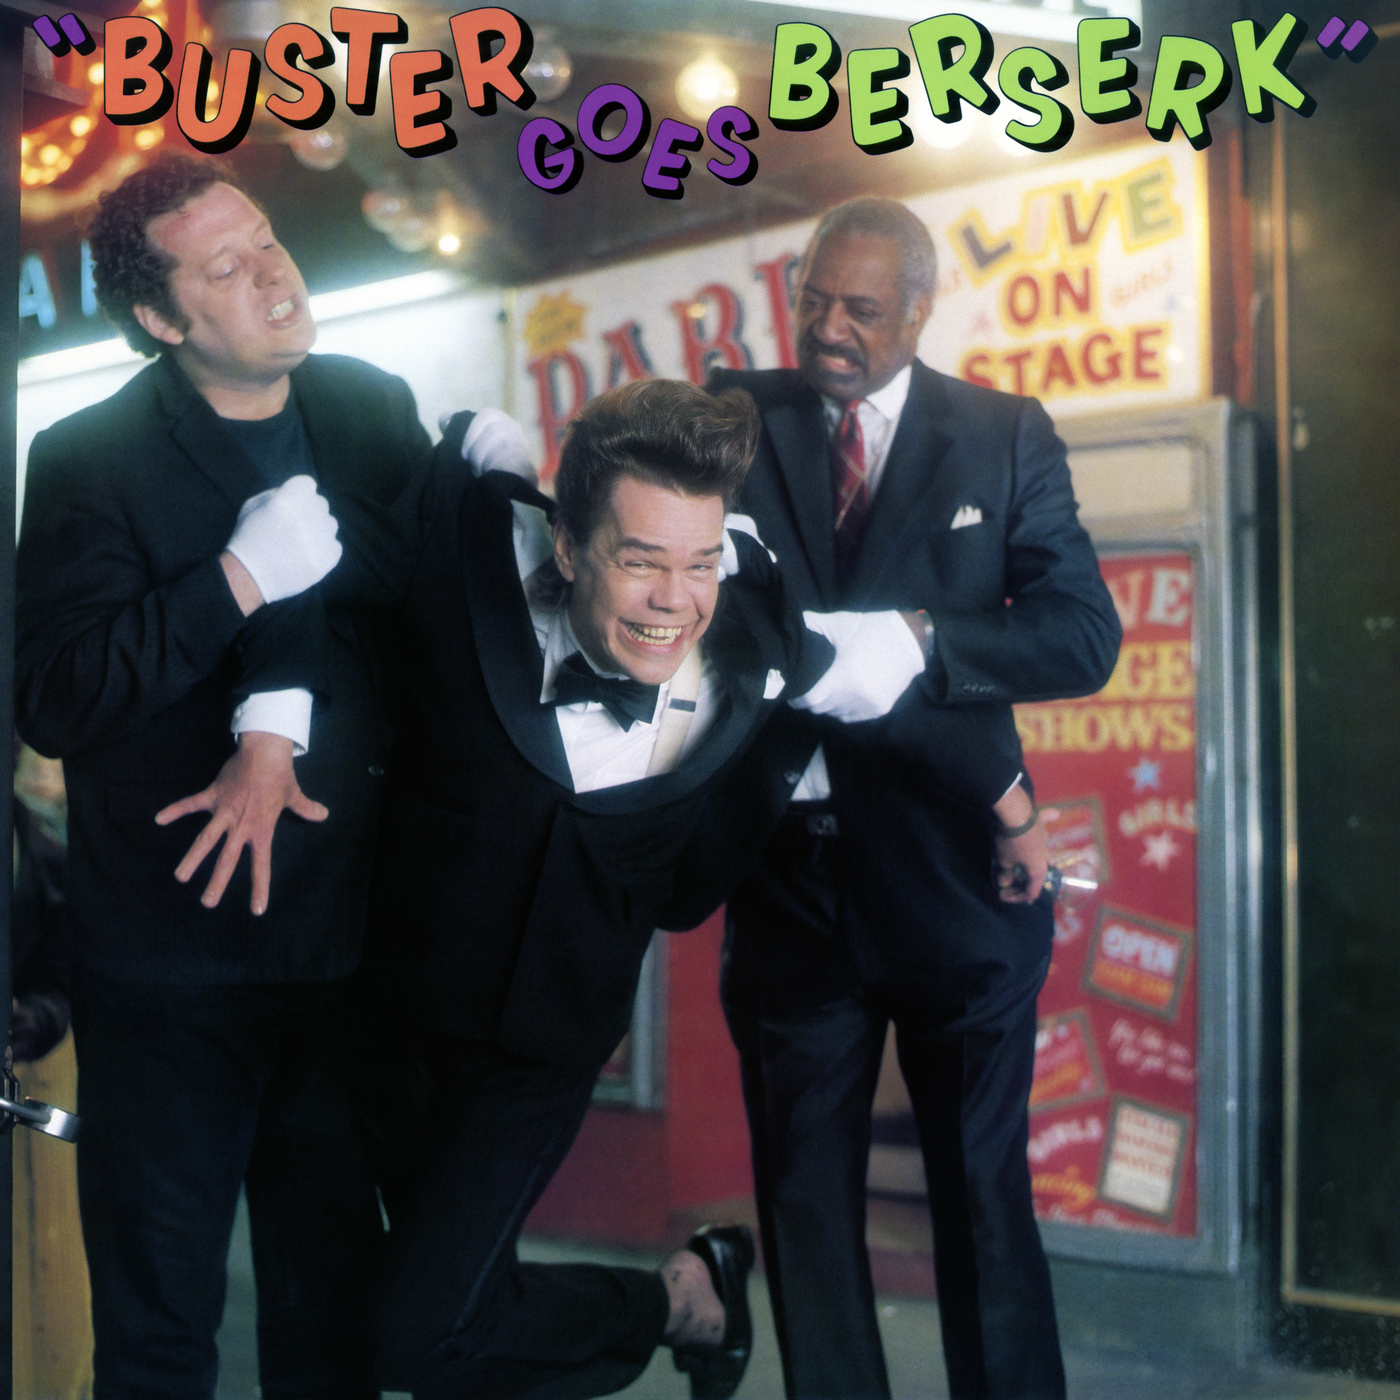 Buster Goes Berserk - Buster Poindexter